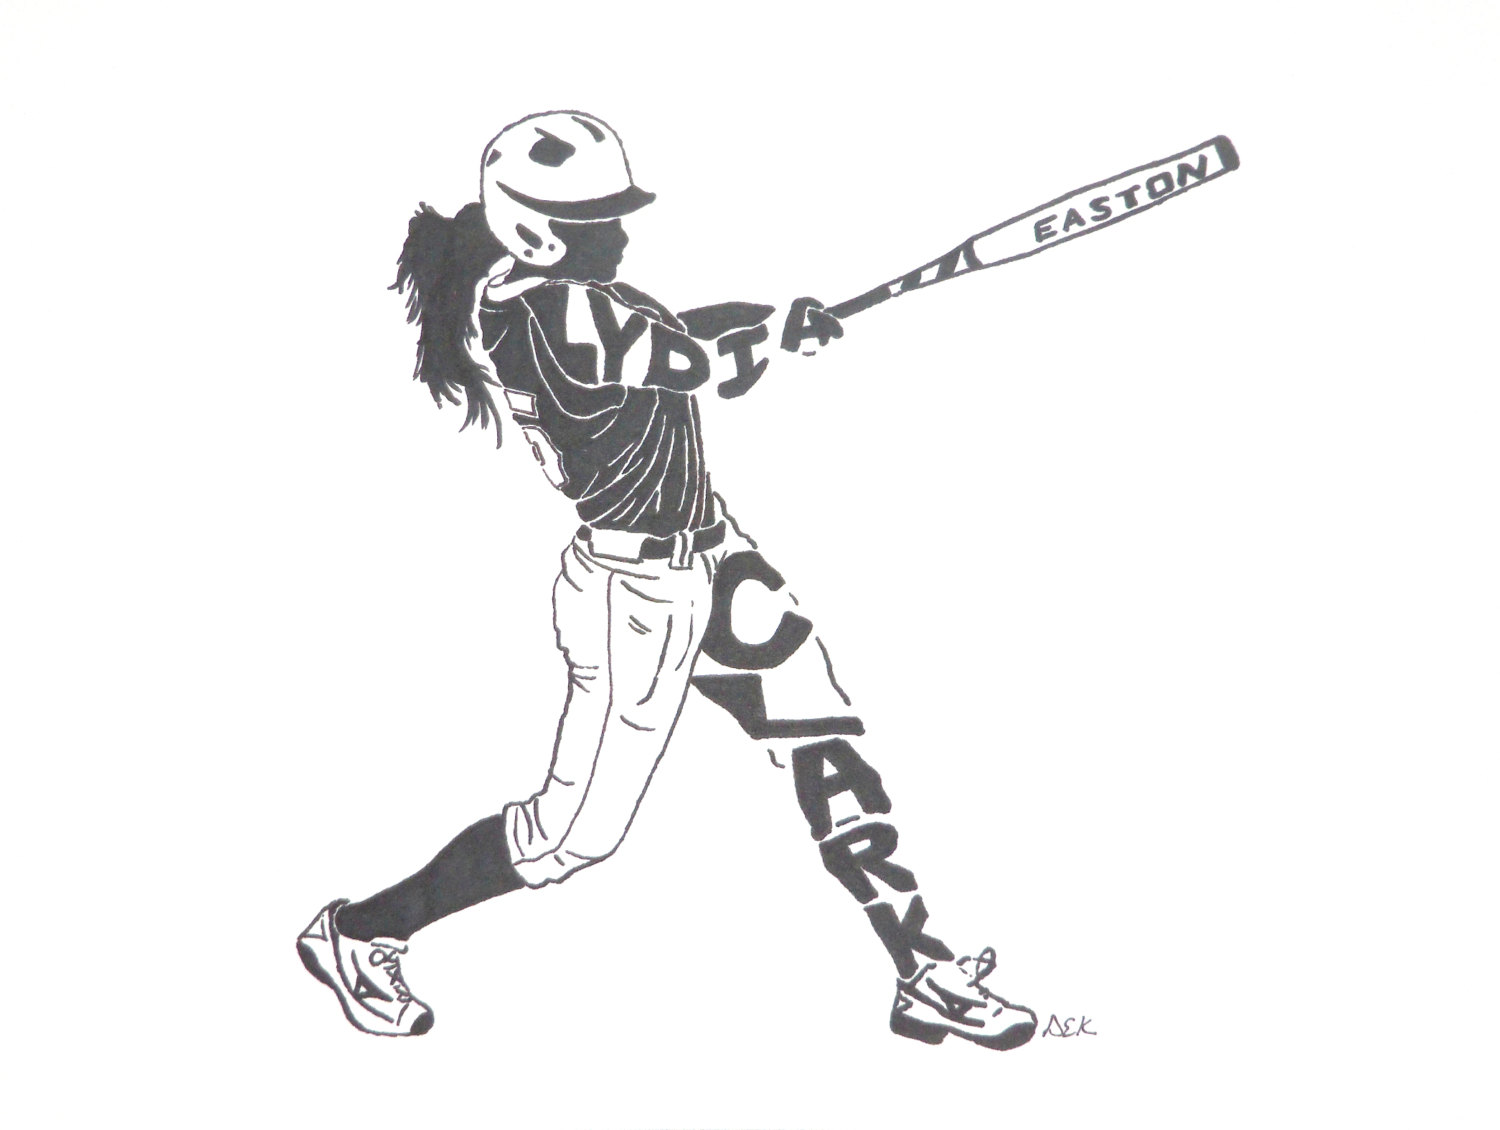 Drawn baseball softball  Softball Women's Silhouette